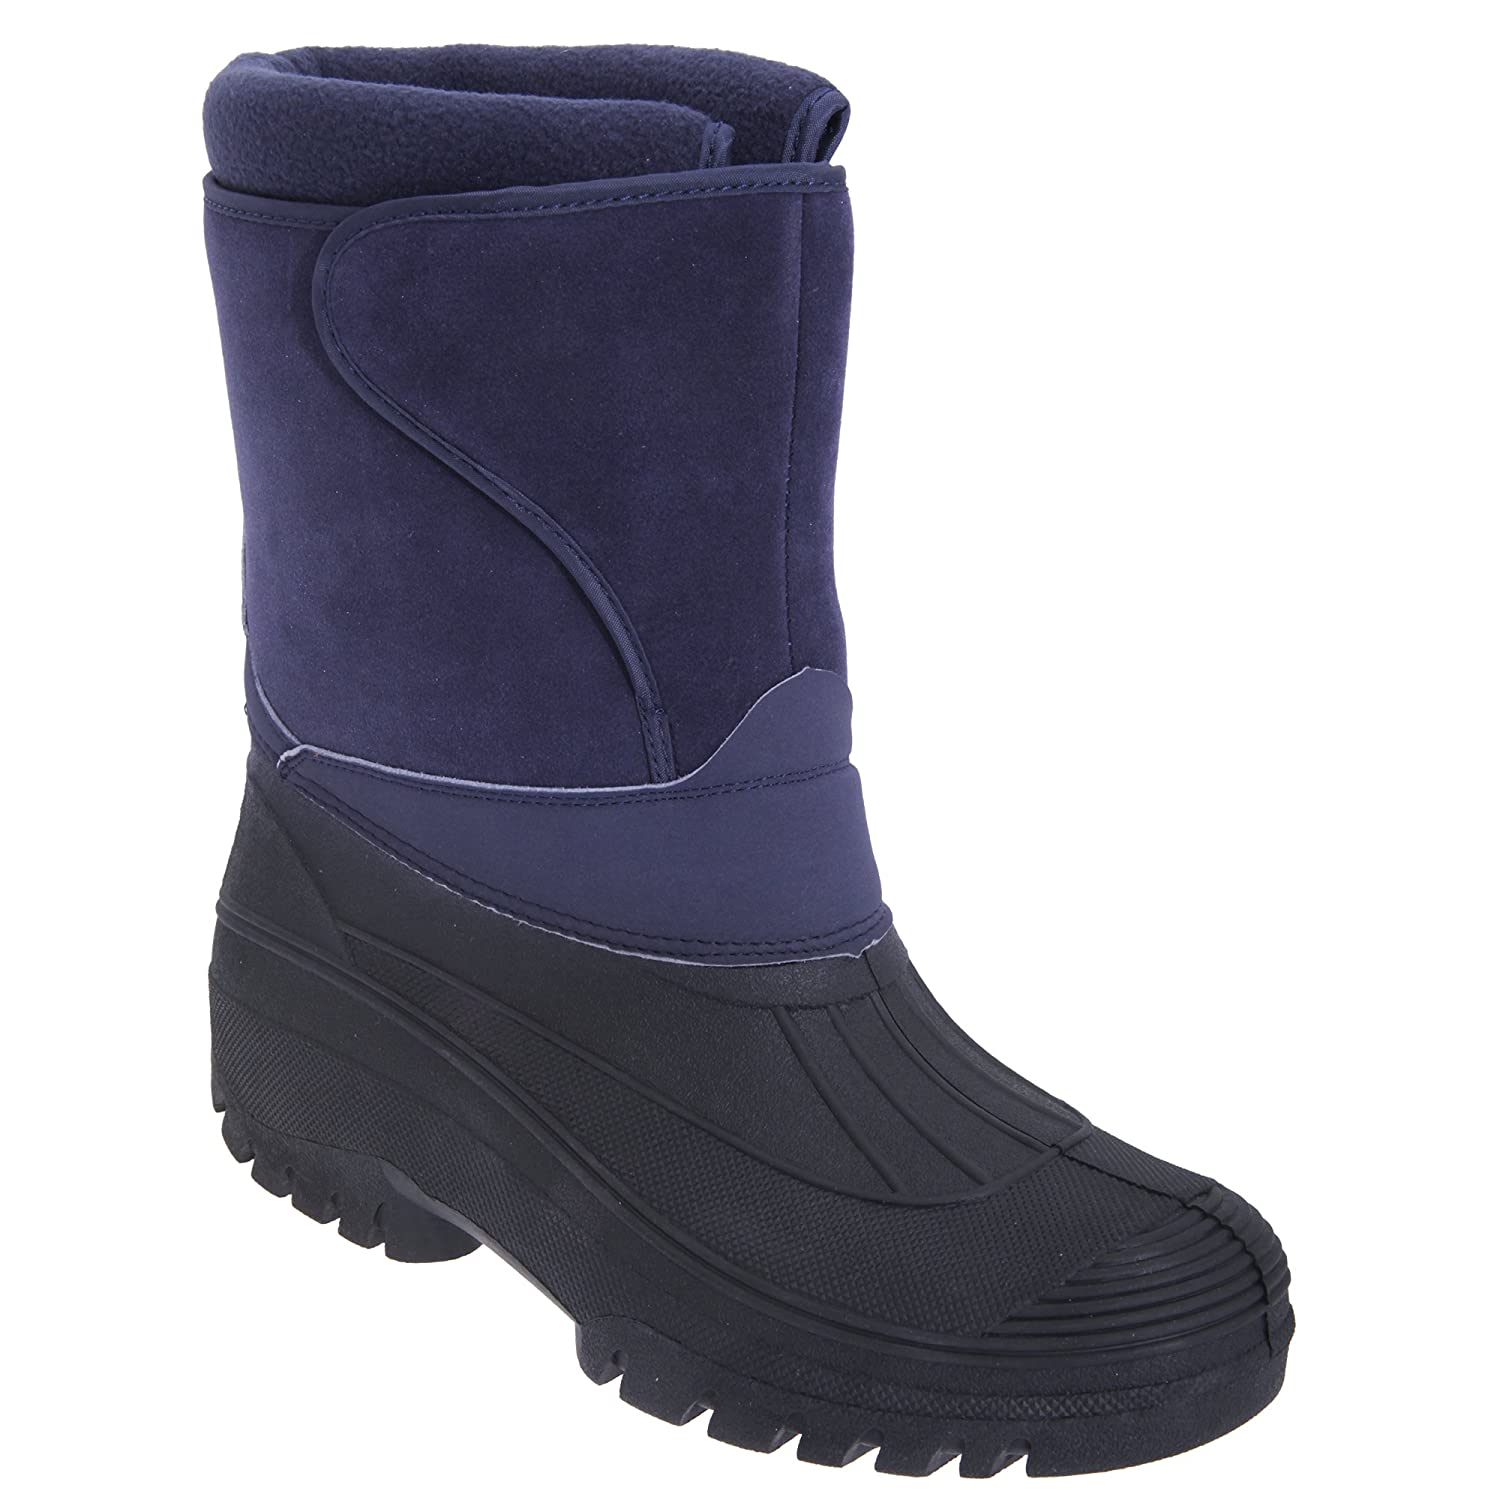 StormWells Adults Unisex Touch Fastening Insulated Boots